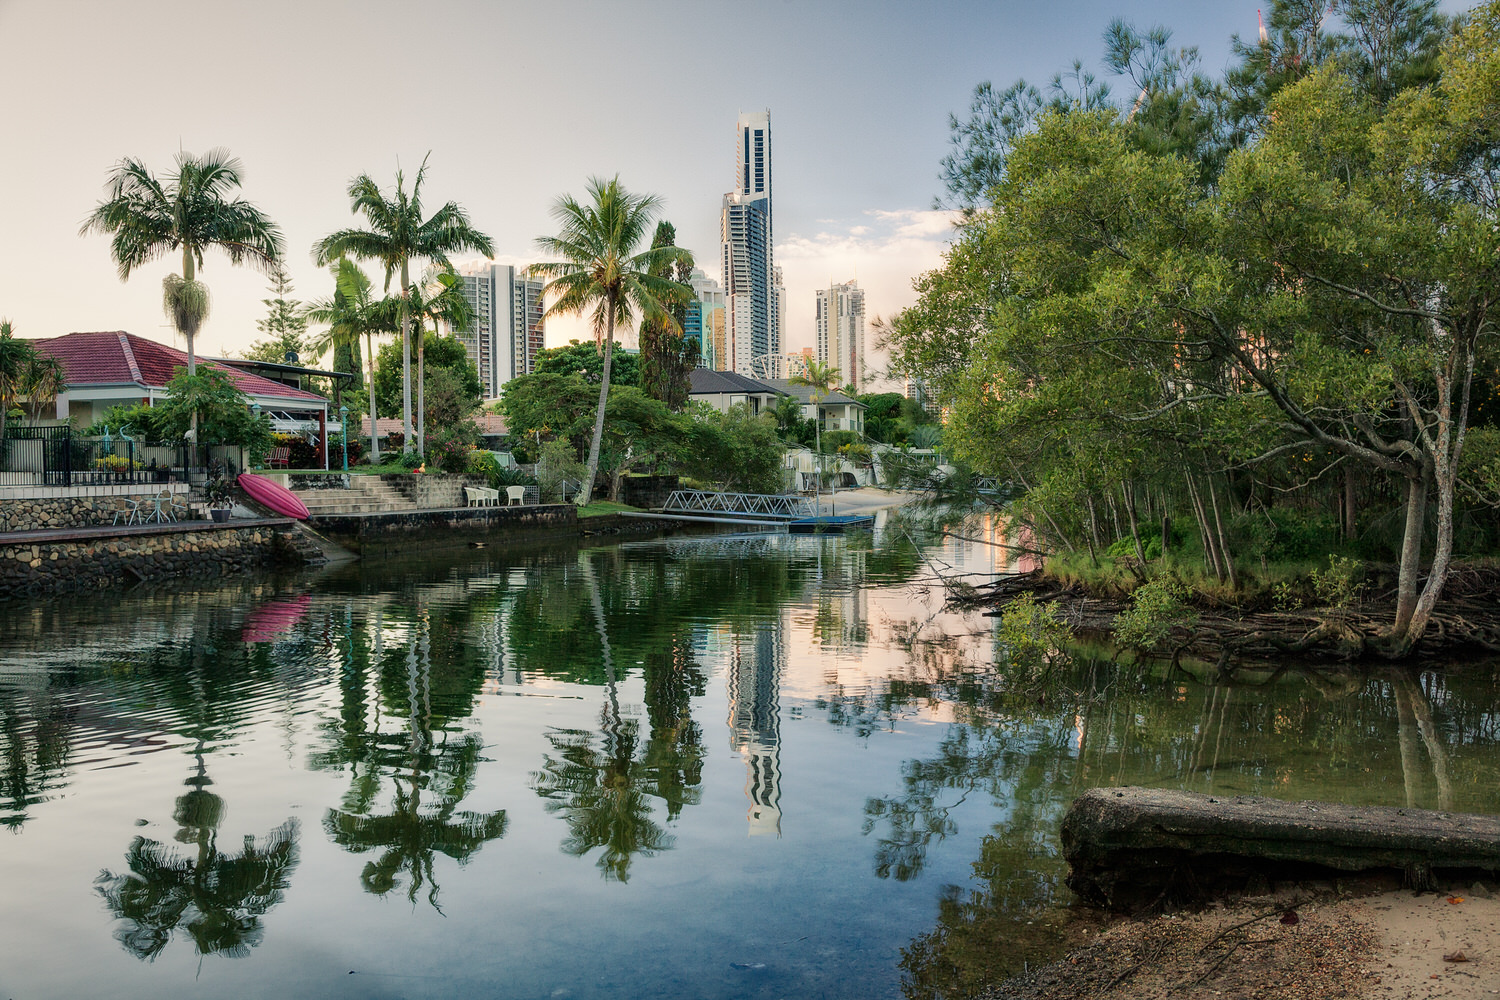 An idylillic life for local residents on one of the    tranquil waterways    in    Surfers Paradise   , Queensland.